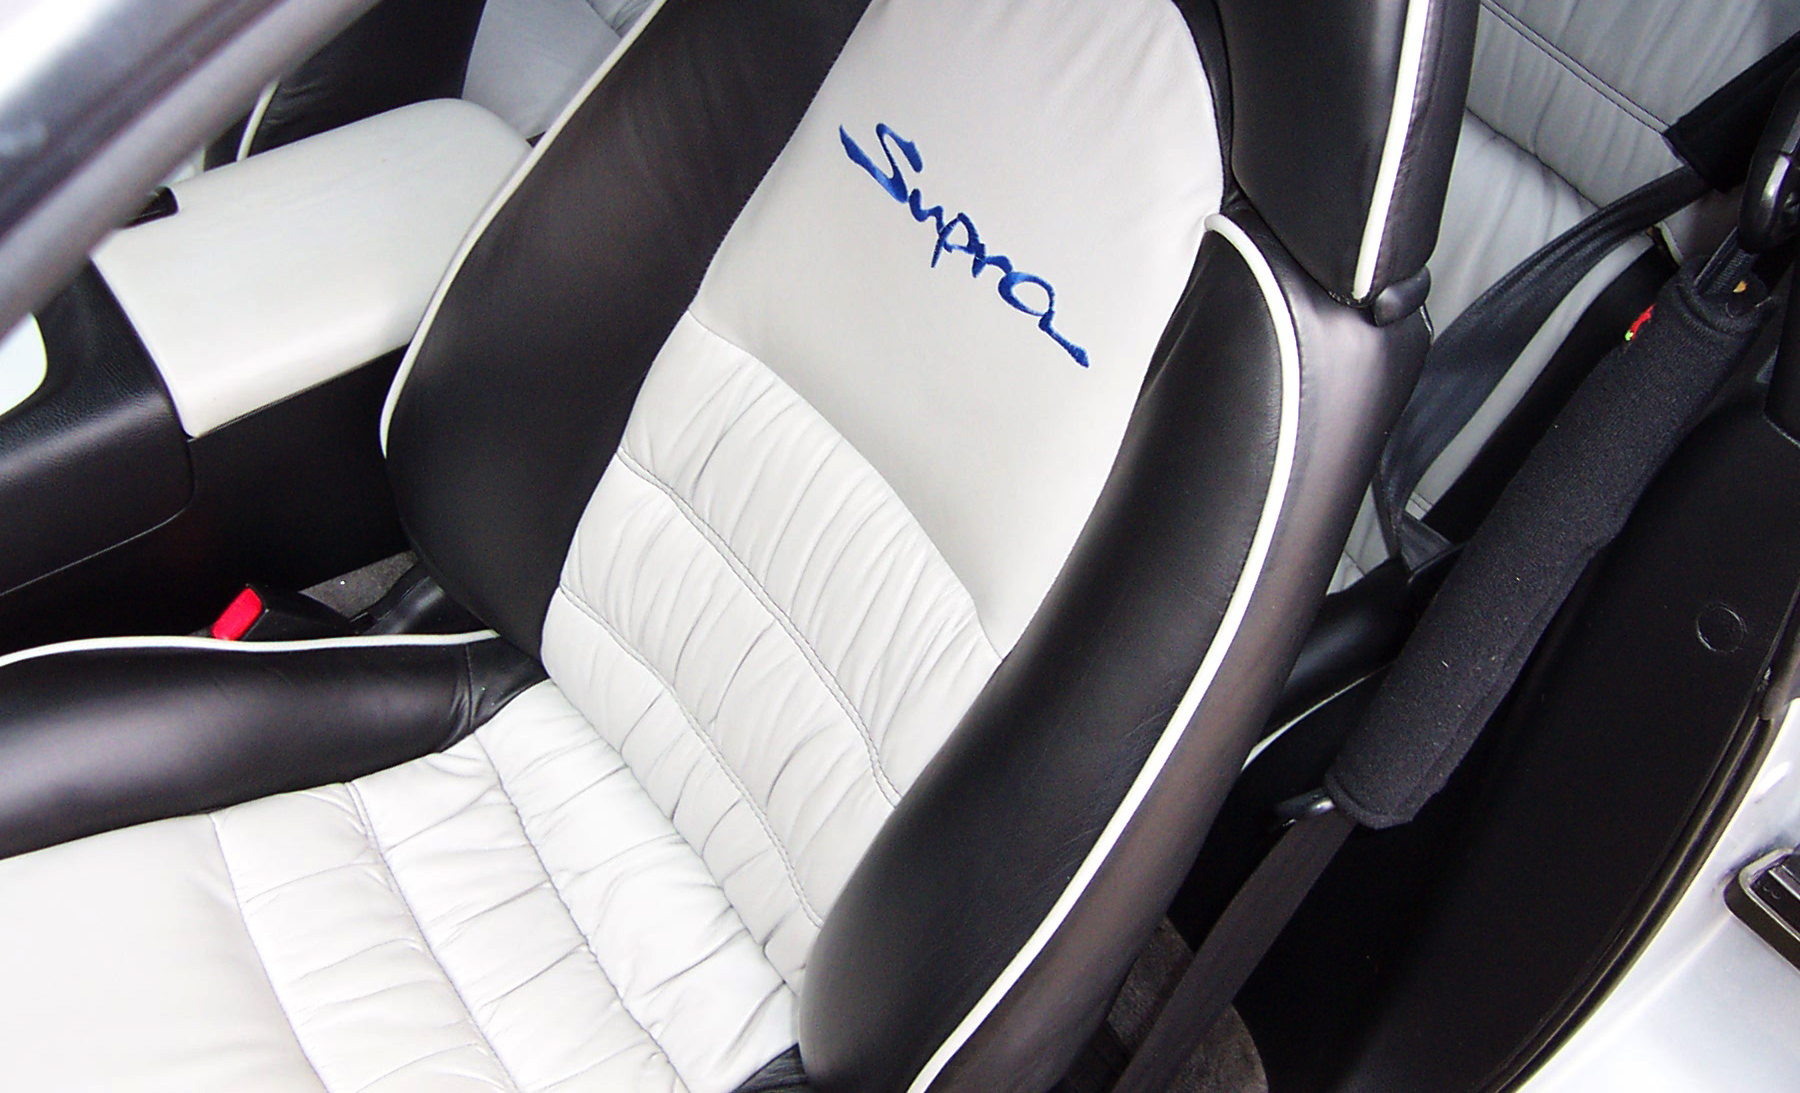 Black+and+white+interior%2C+including+piping%2C+with+custom+embroidery